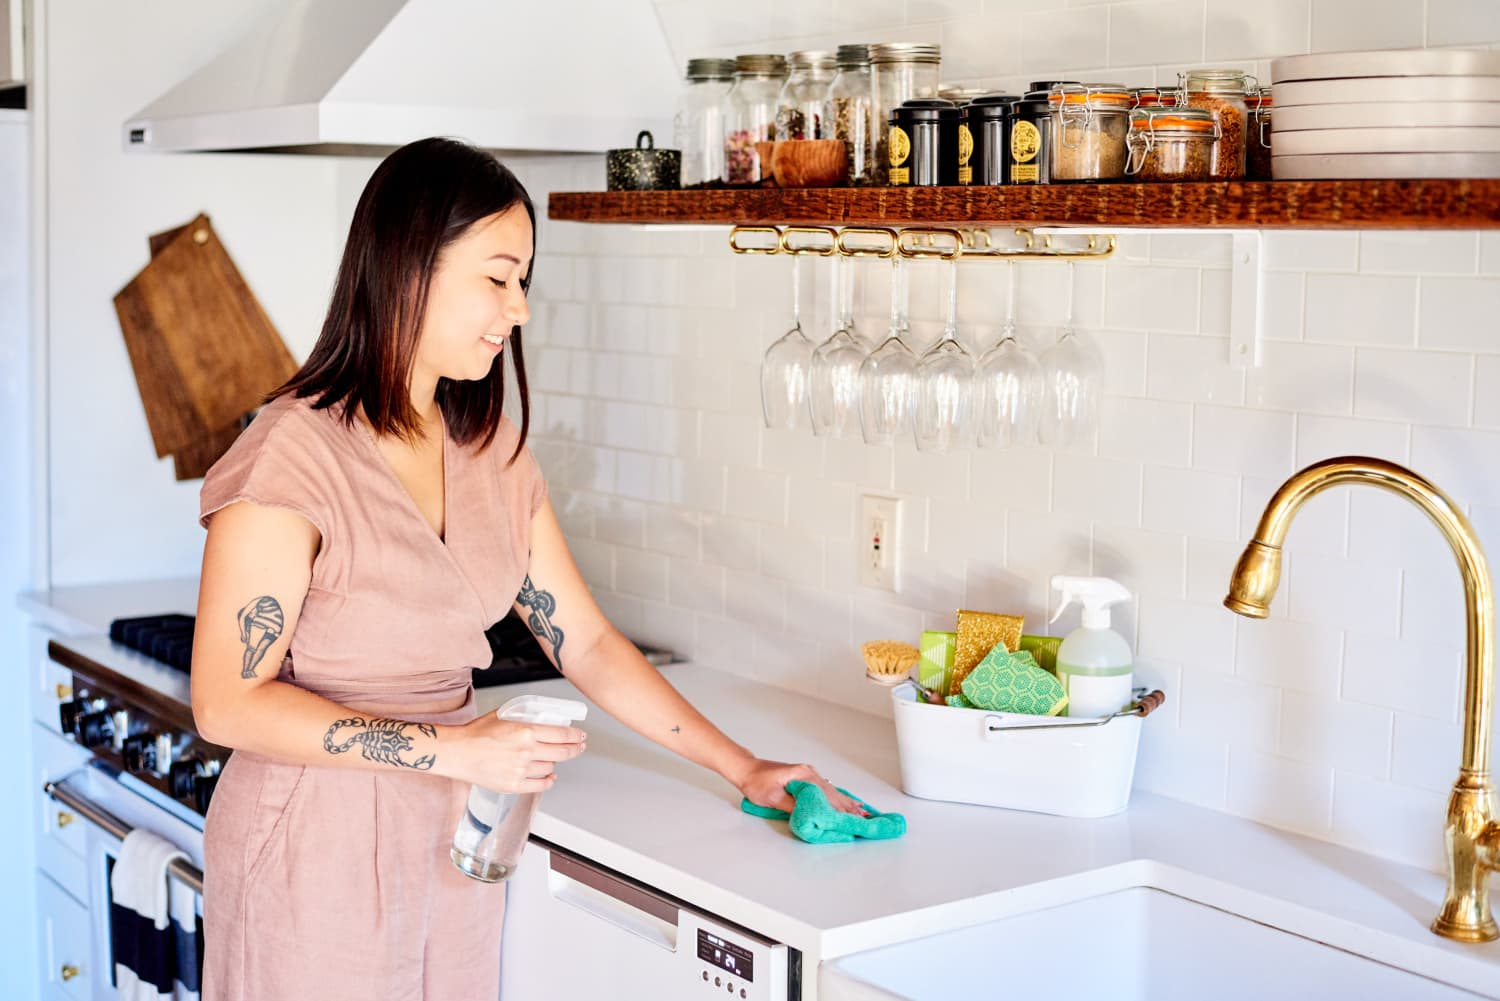 10 Little Ways to Make Your Countertops a Million Times Better and More Efficient